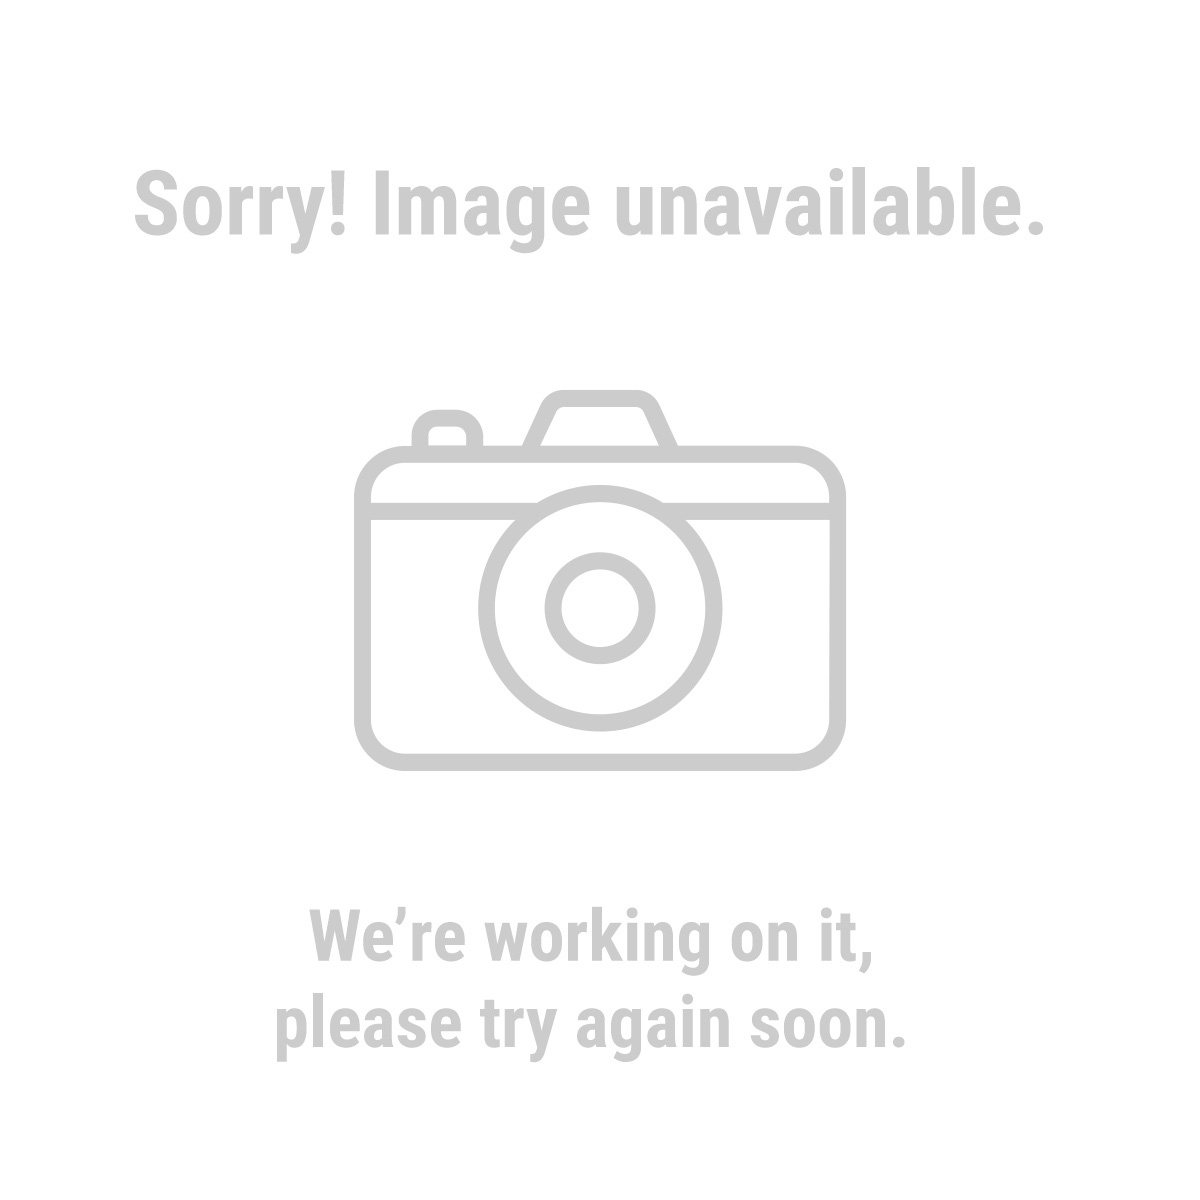 Ship to Shore® 61517 Home Hair Care Kit